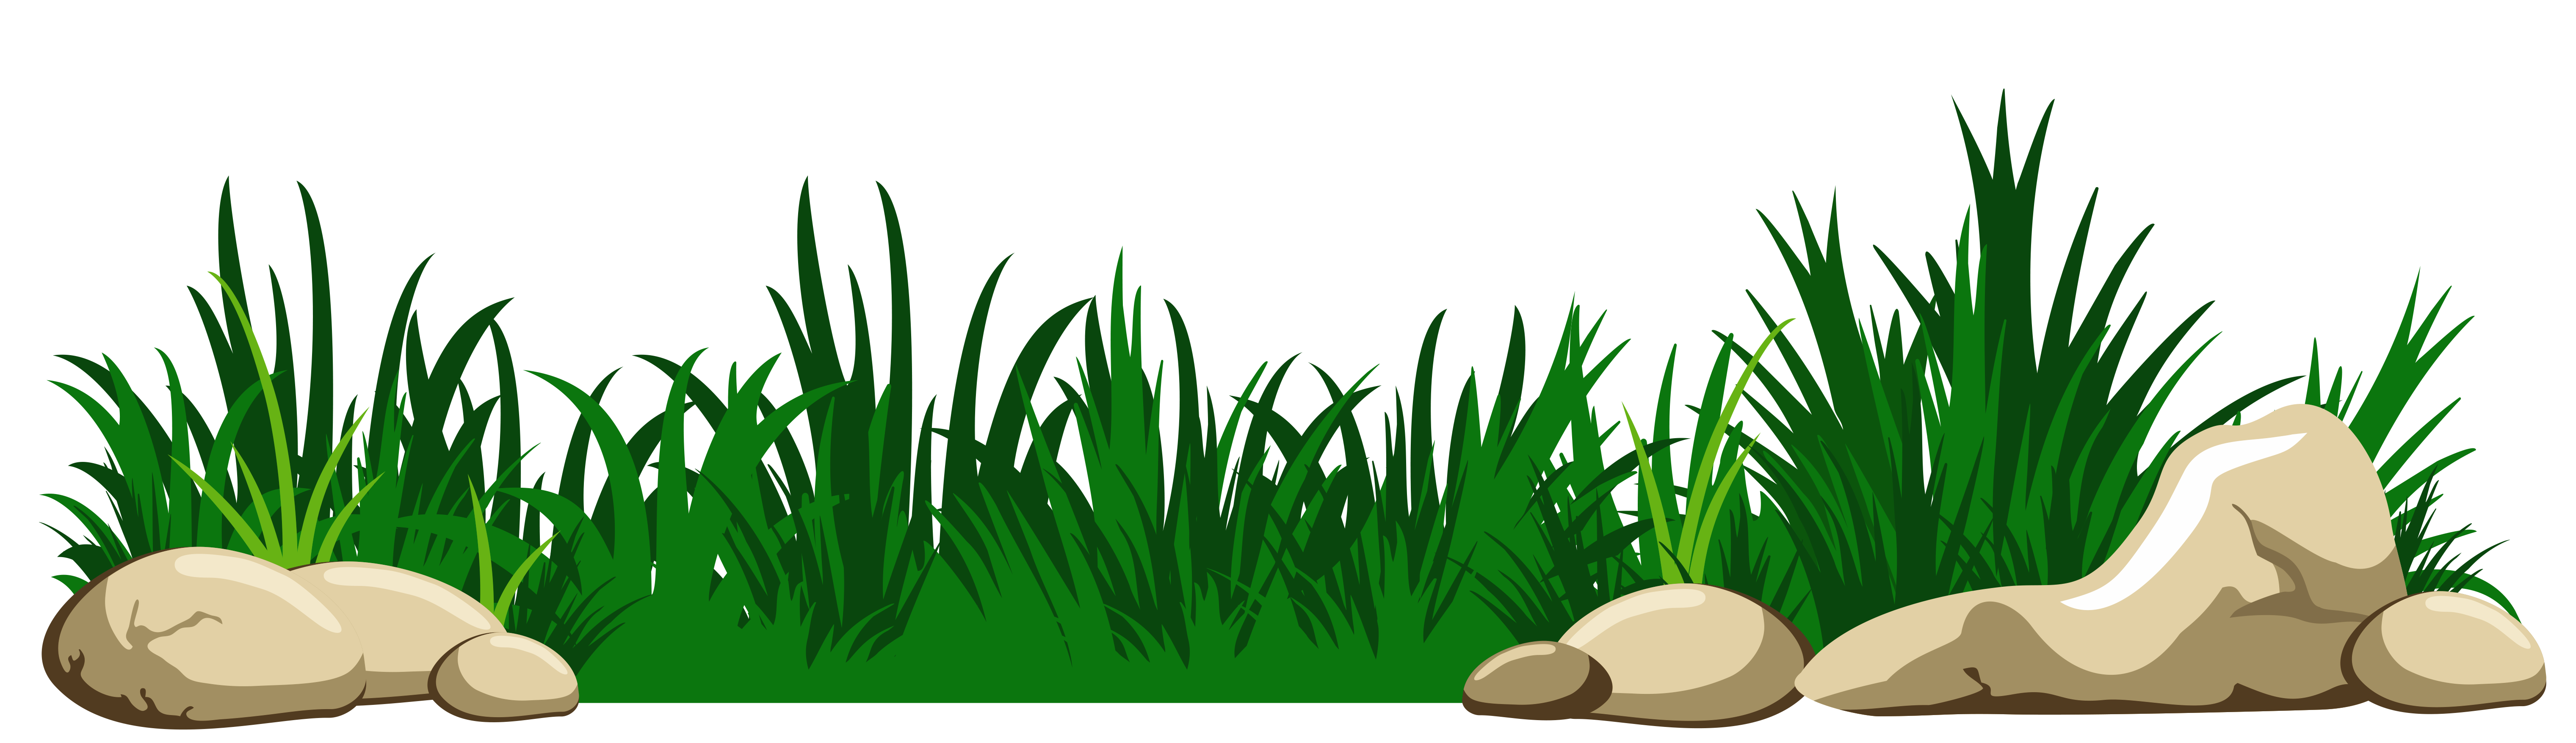 Grass clipart #13, Download drawings